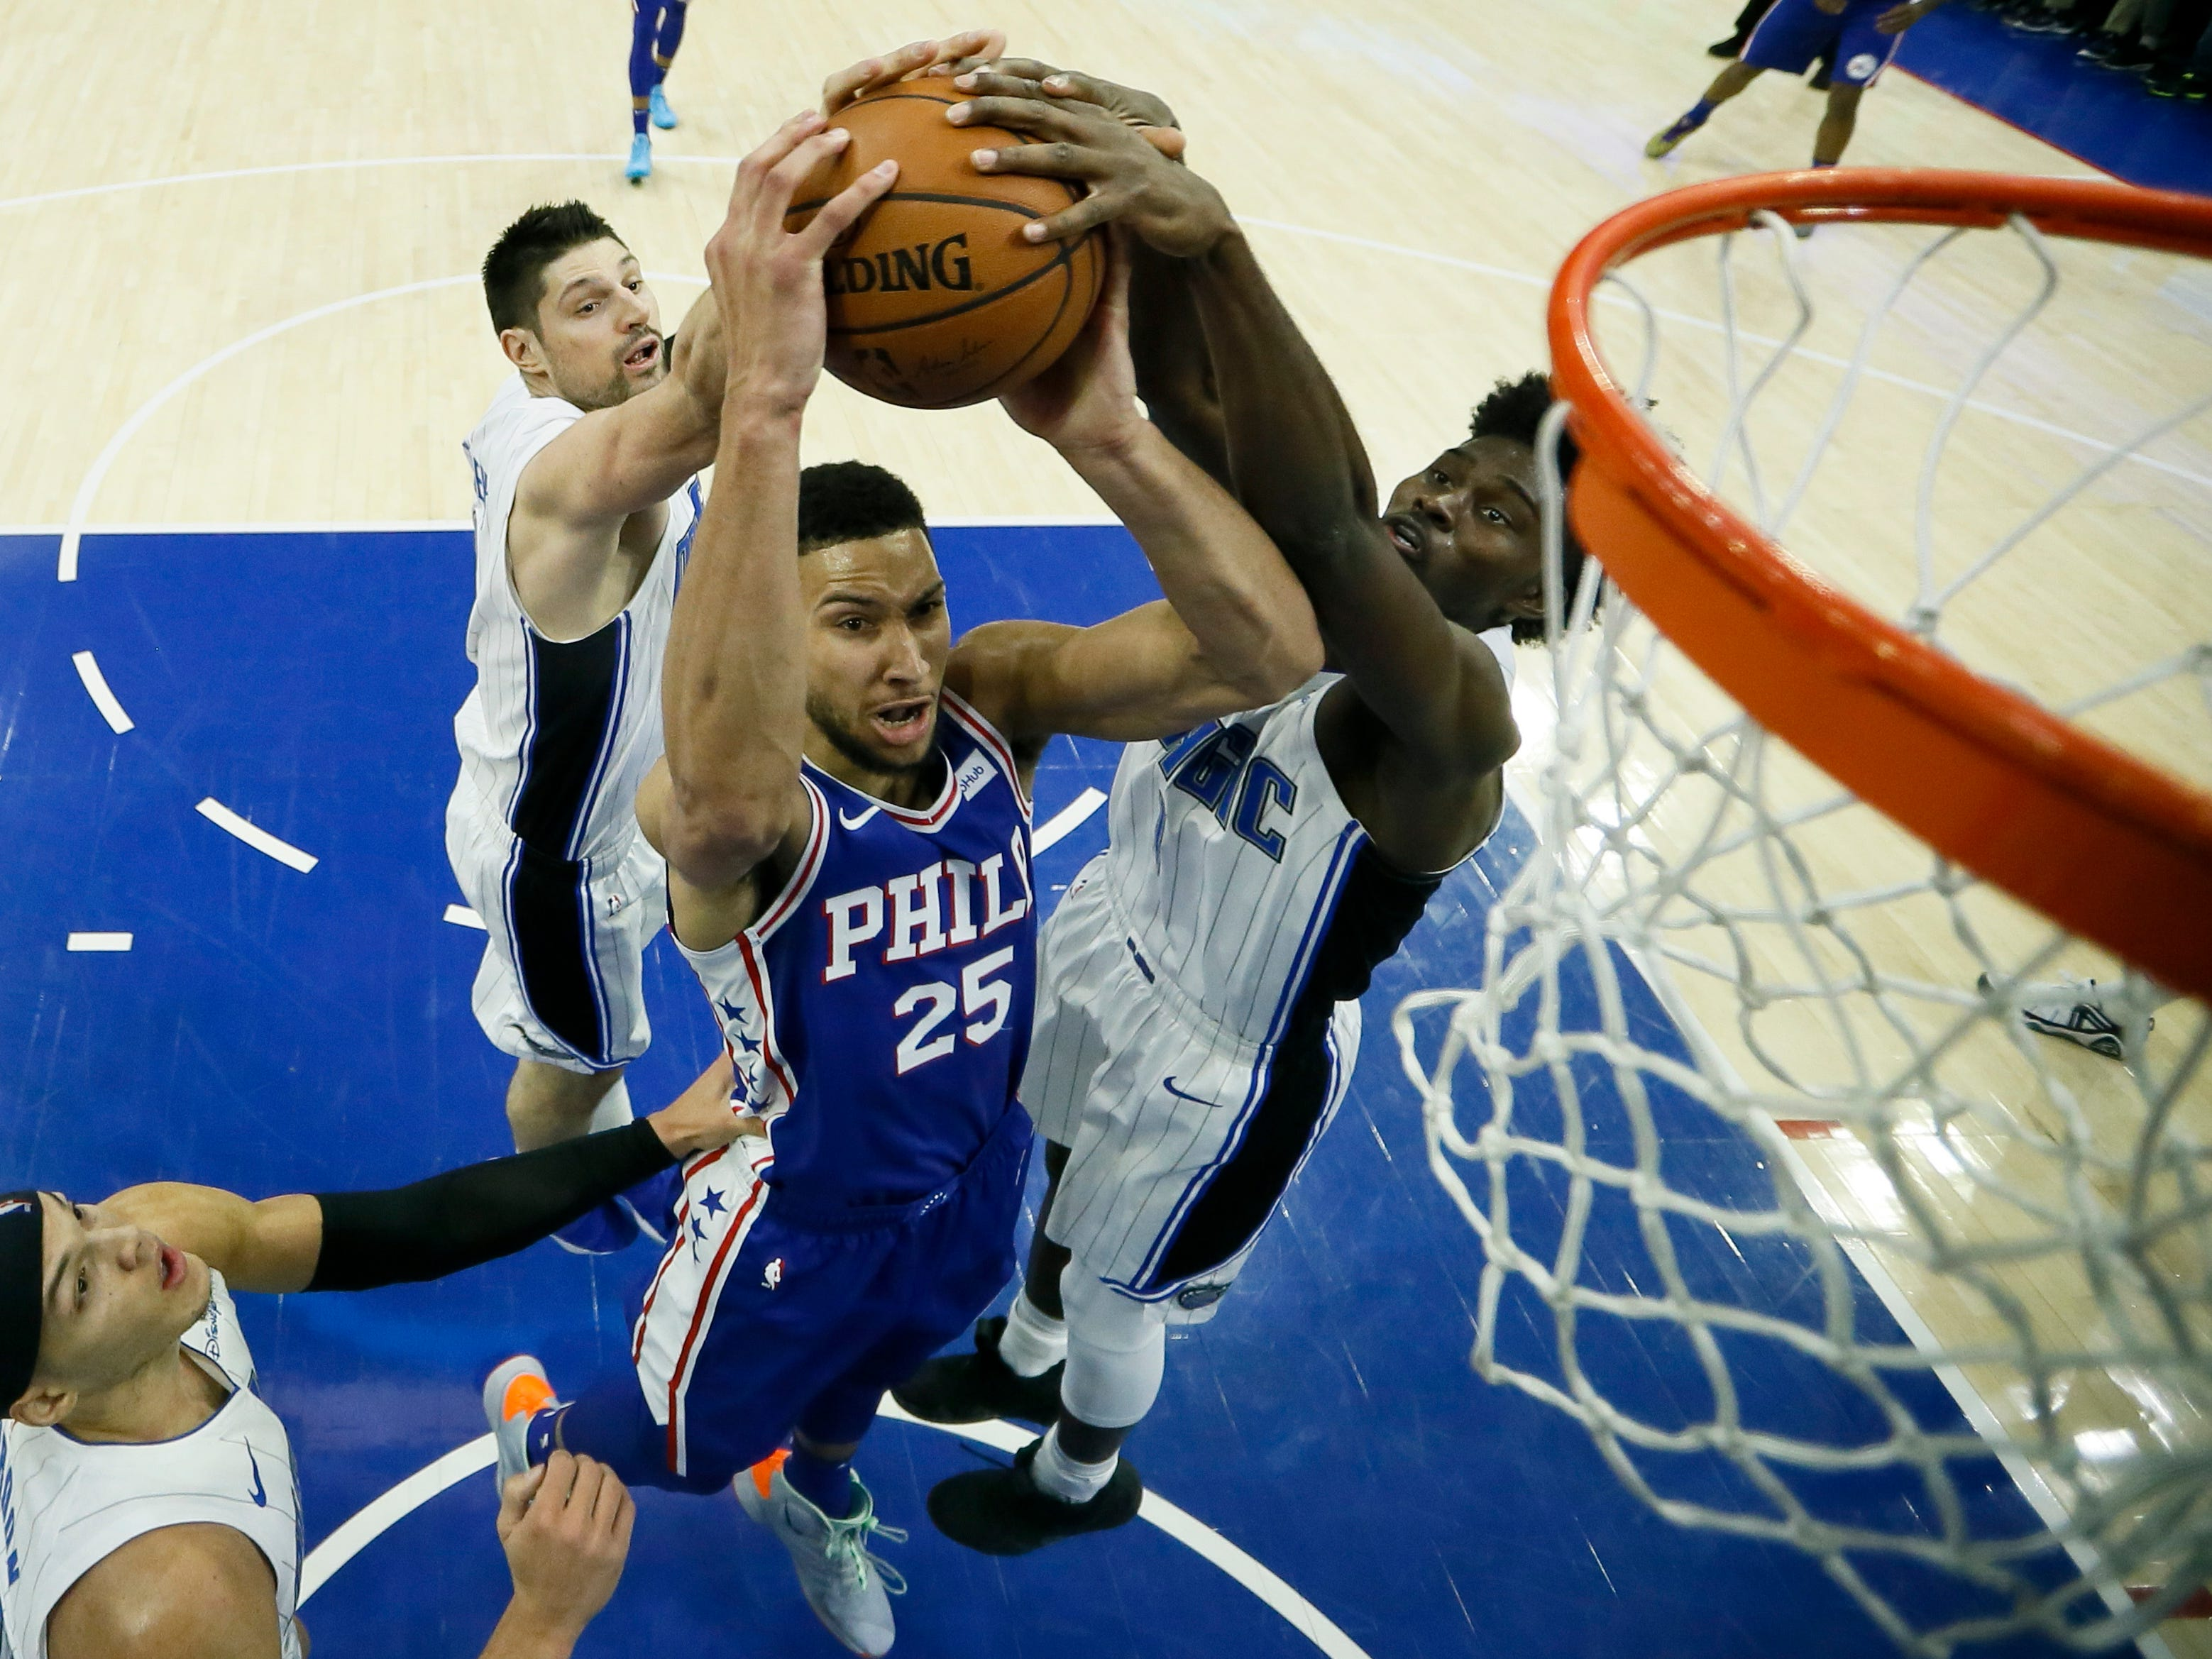 Frank: In some respects, Fultz following in Embiid's footsteps